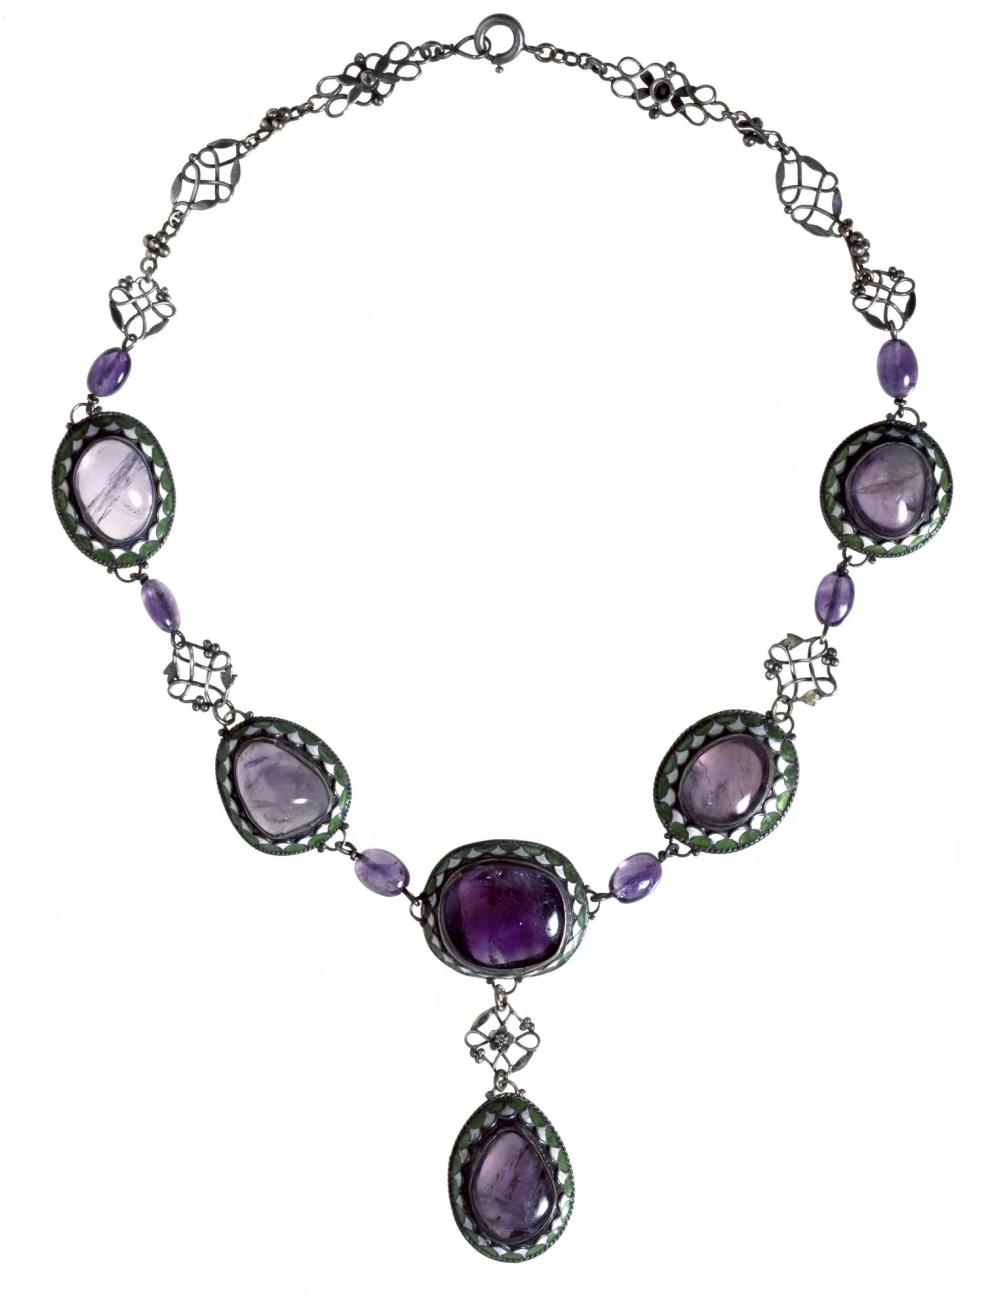 Necklace of silver, amethysts and green and white enamel, the colours of the suffragette movement: English, Birmingham, by Arthur and Georgina Gaskin, c. 1910